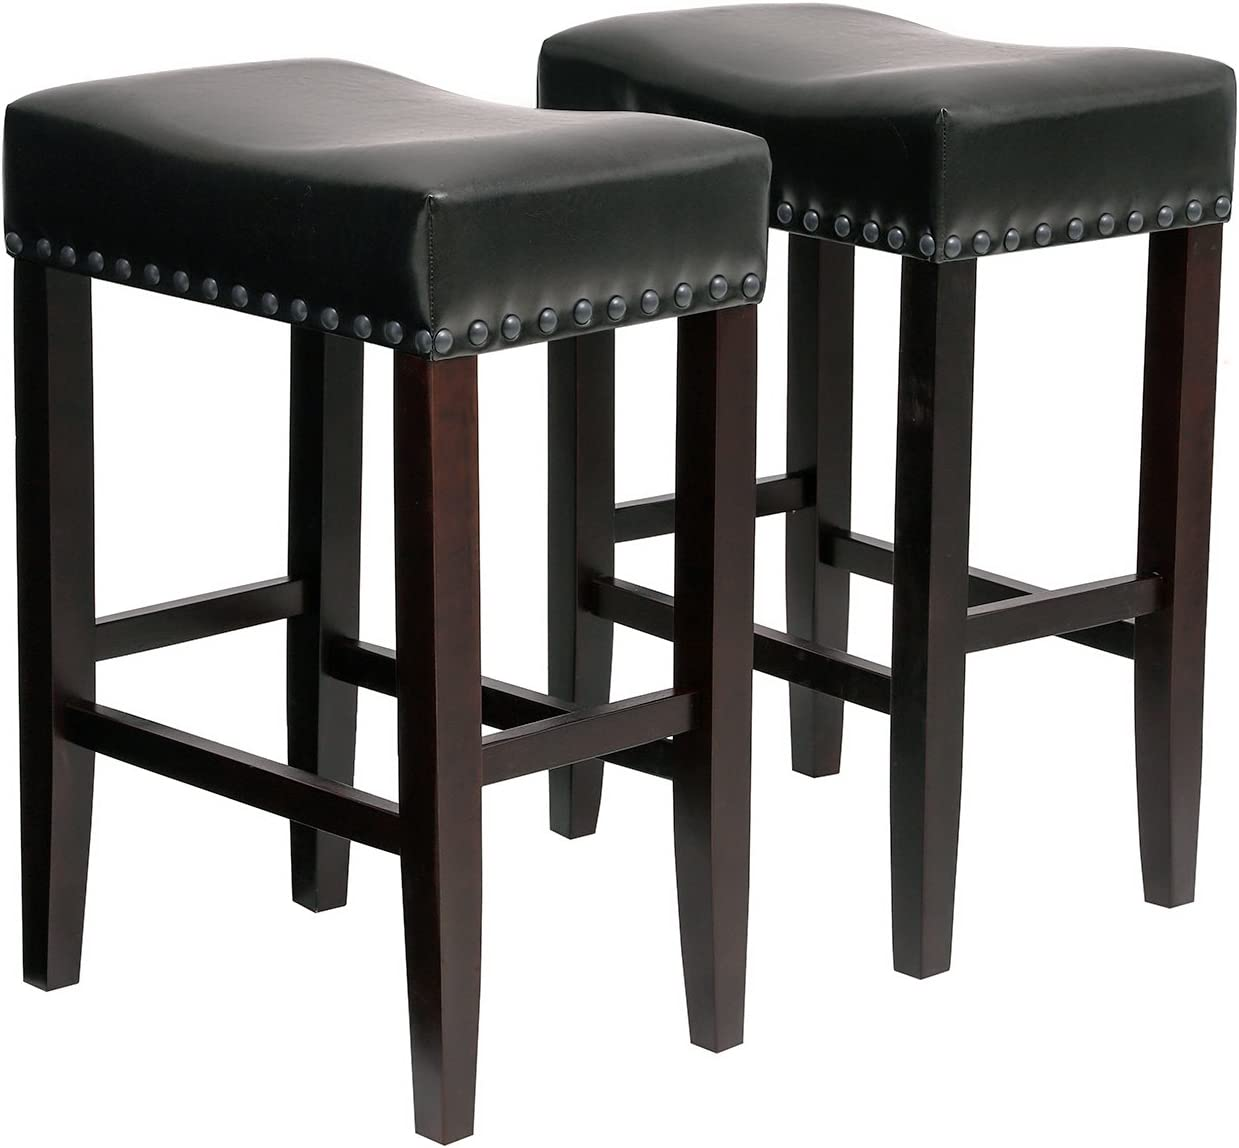 SONGMICS Set of 2 Counter Stools, Well-Padded Ergonomic Bar Stools, Solid Wood Legs, PU Cover, Seat Height 26.4 Inches, with Footrest, Dark Brown ULDC37BR